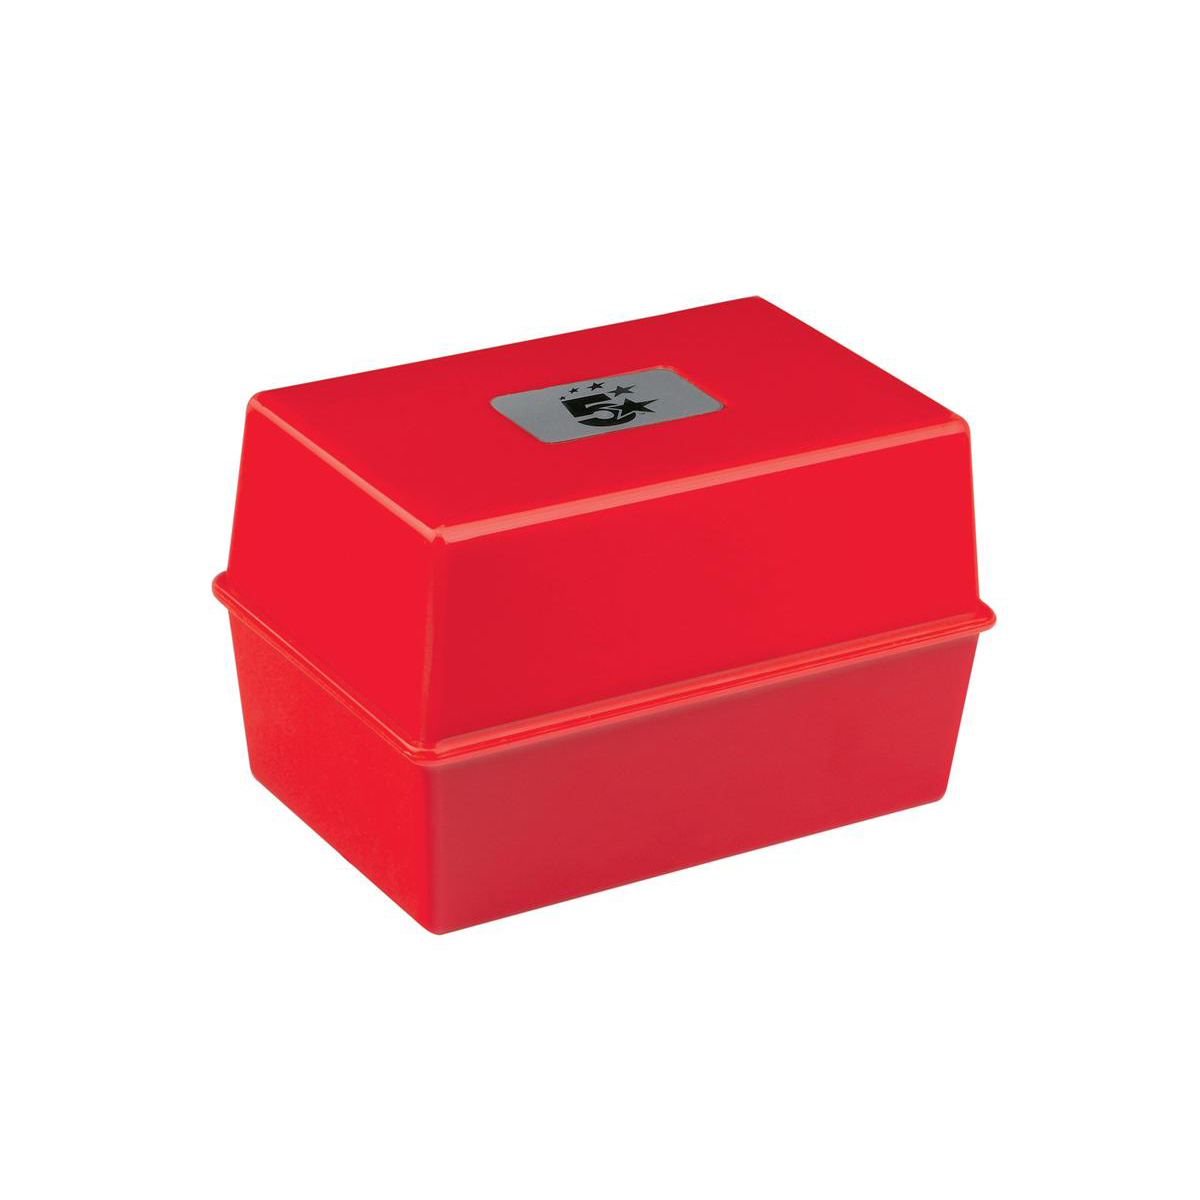 Image for 5 Star Office Card Index Box Capacity 250 Cards 5x3in 127x76mm Red